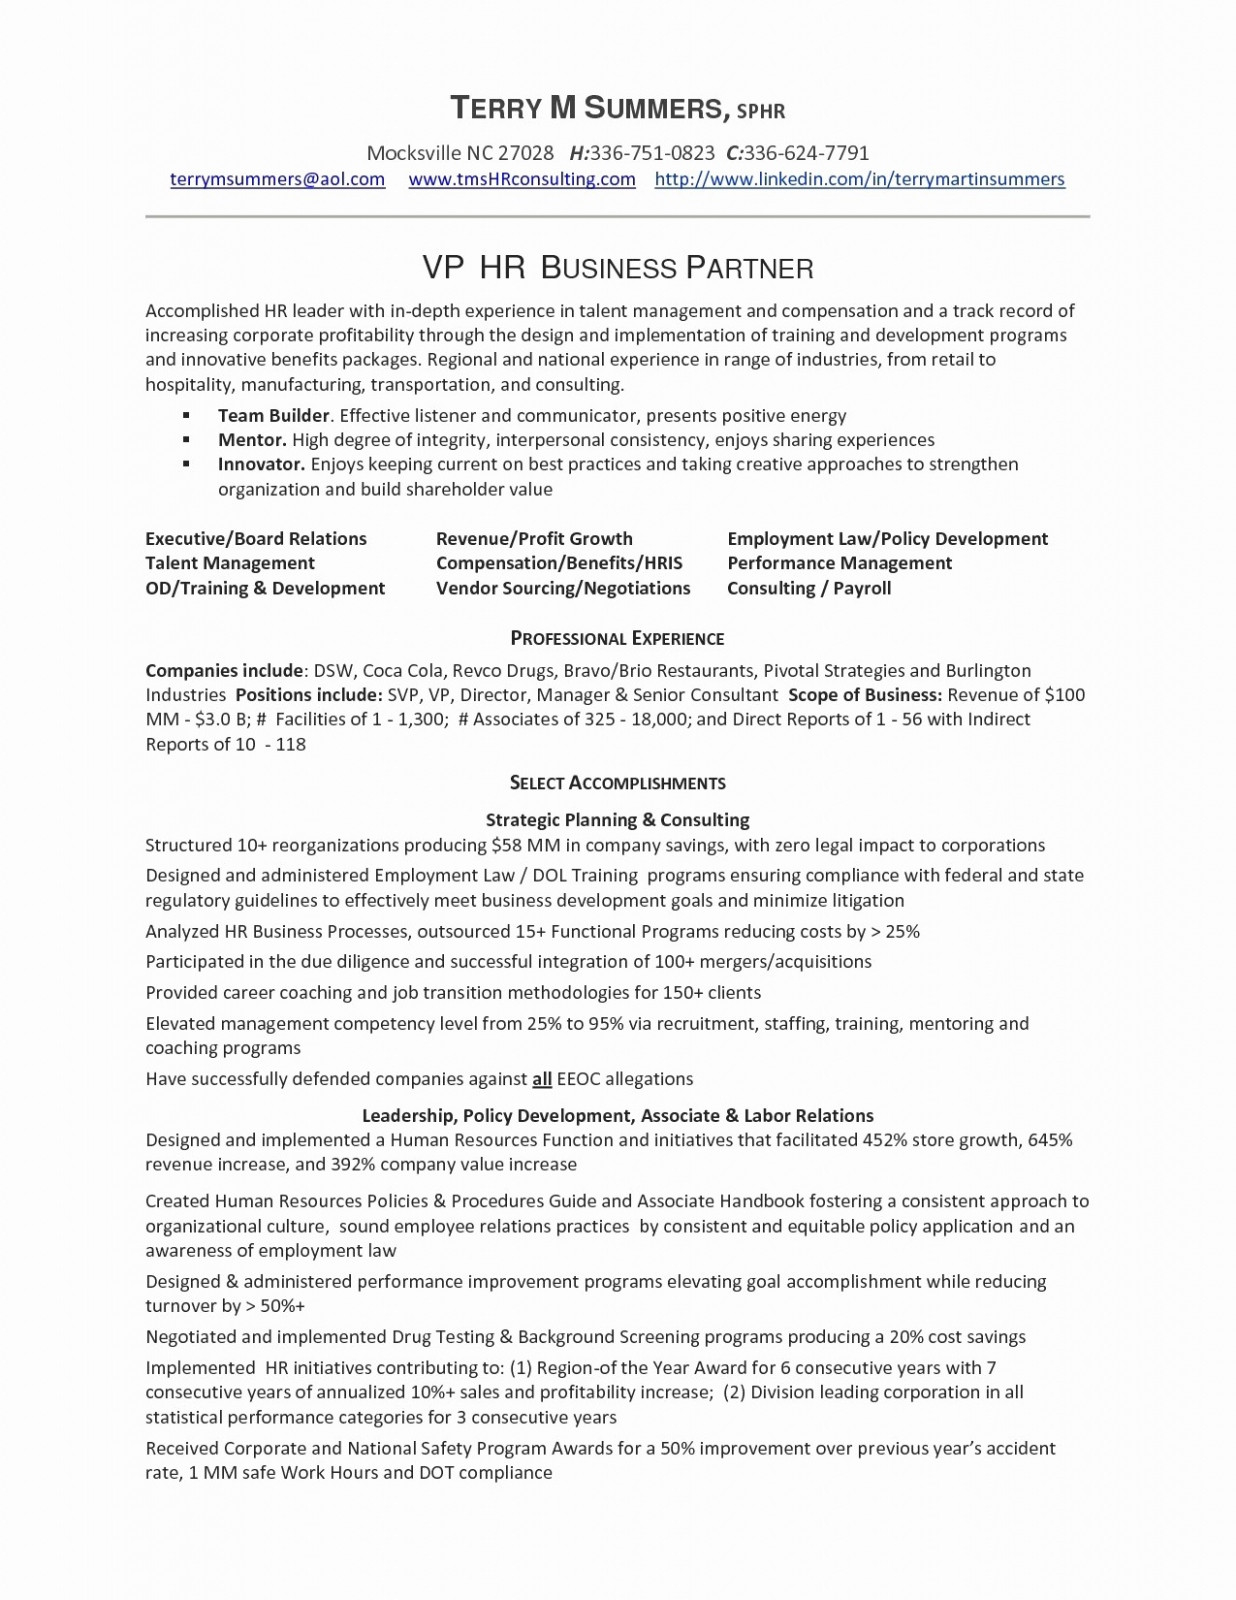 Sample Resume for Project Manager Position - Property Management Resume Examples Reference Property Manager